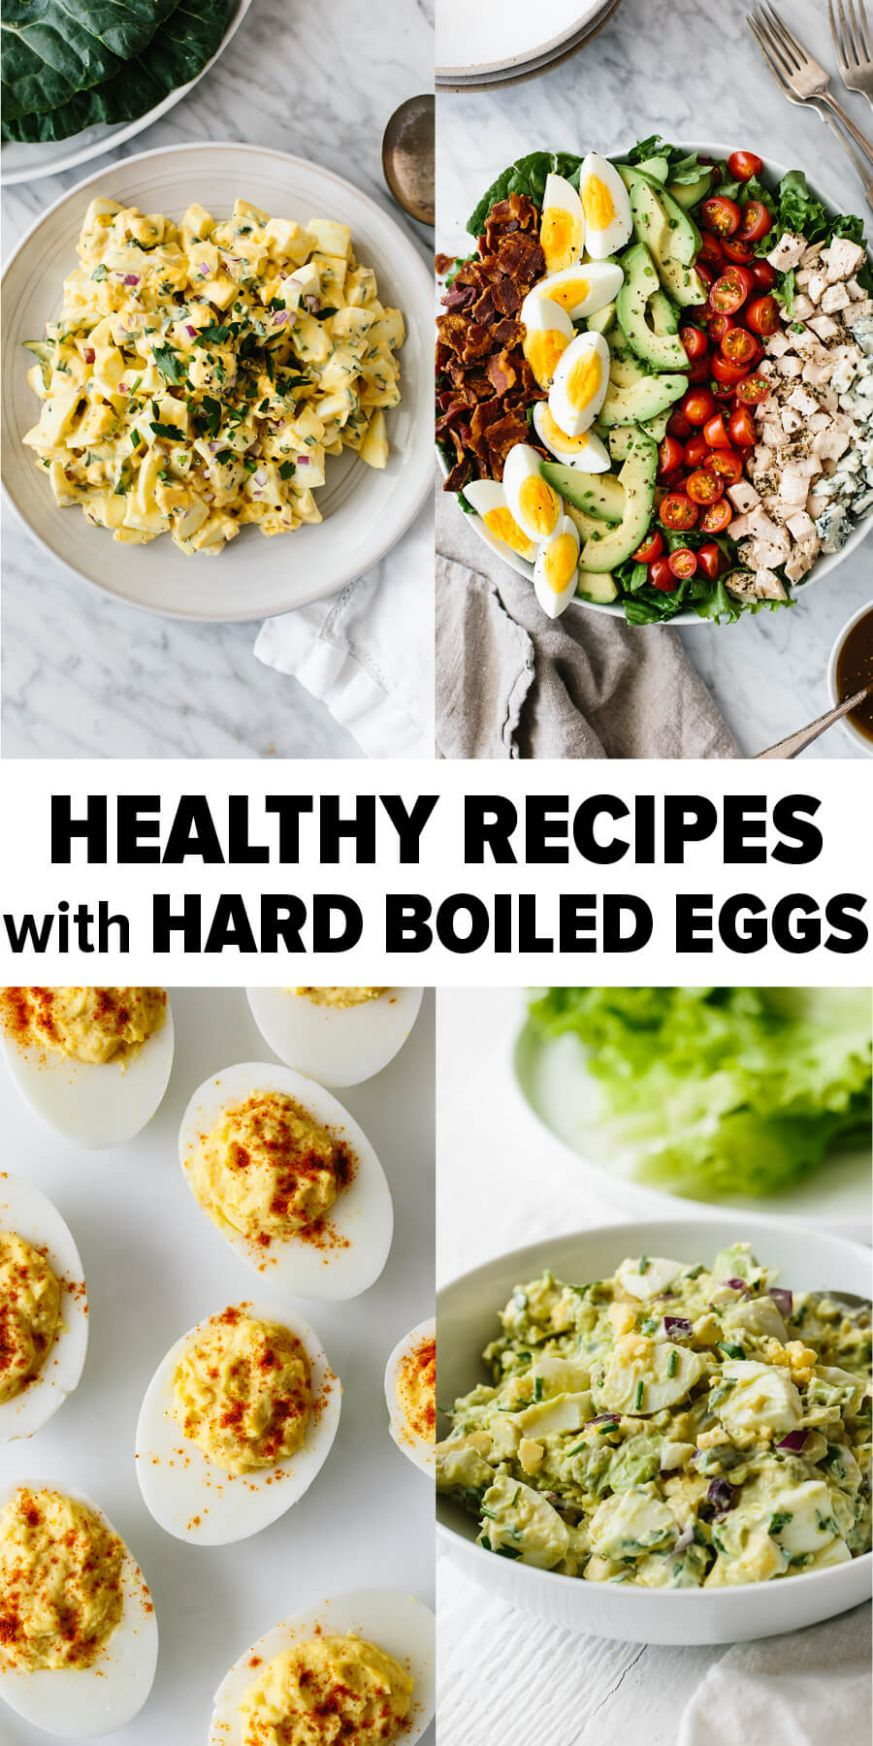 10 Healthy Recipes to Make with Hard Boiled Eggs | Downshiftology